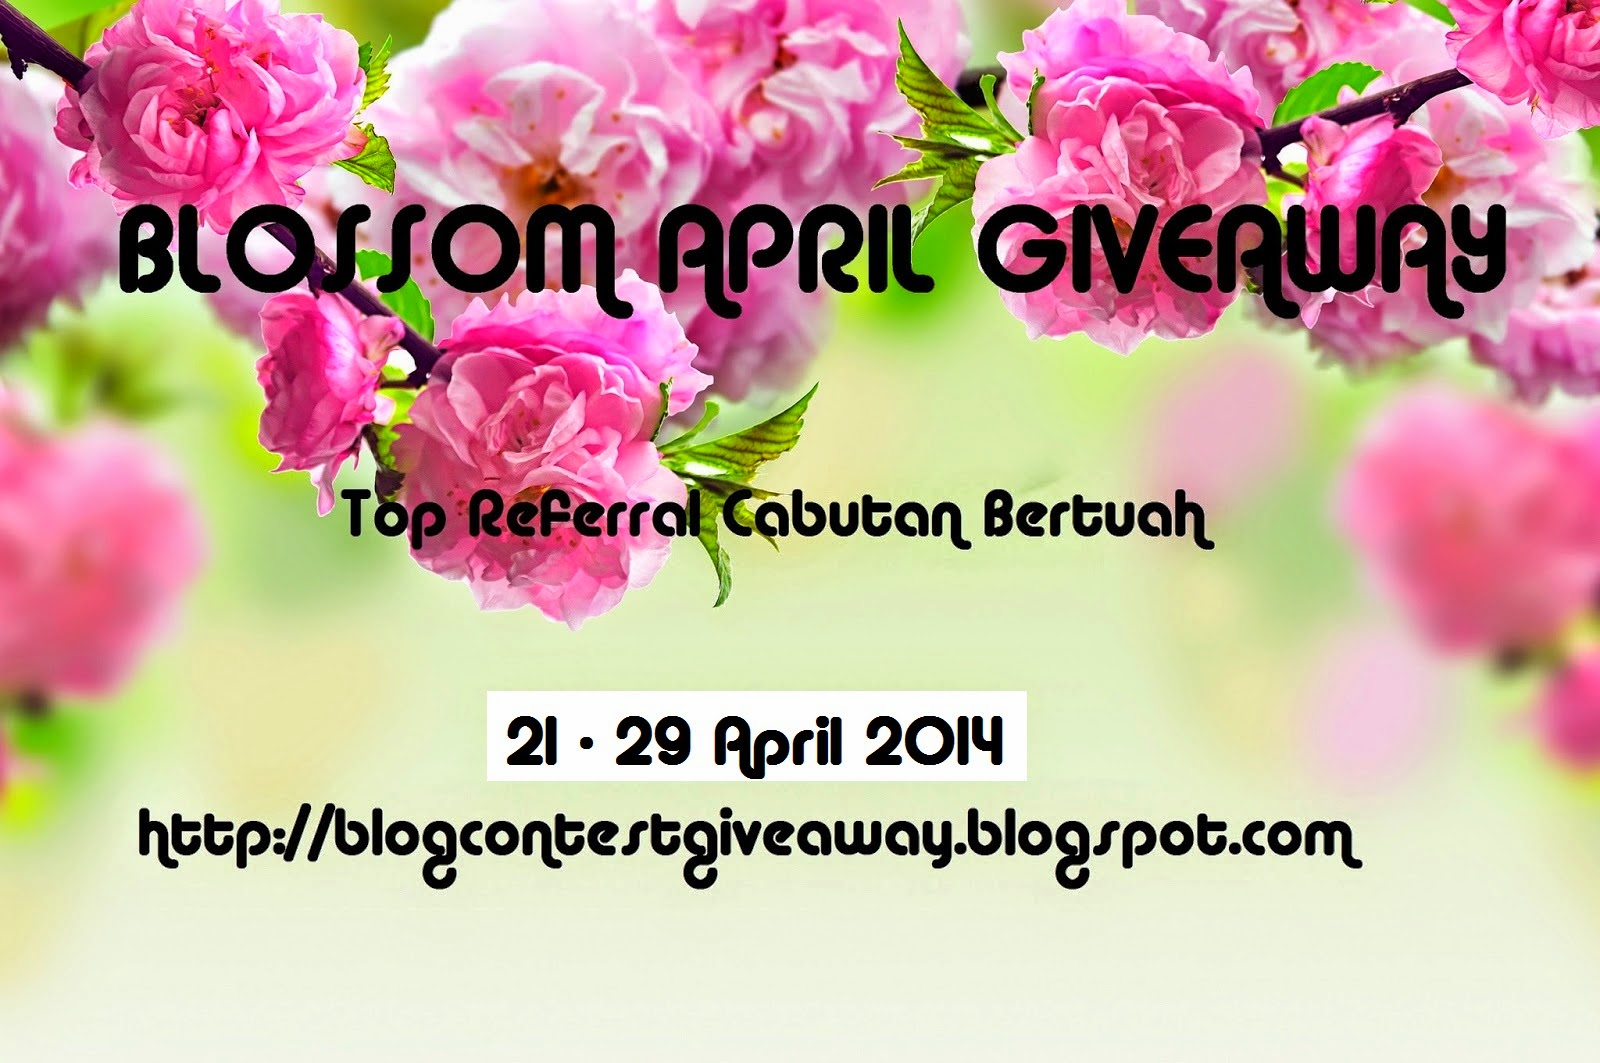 Blossom April Giveaway